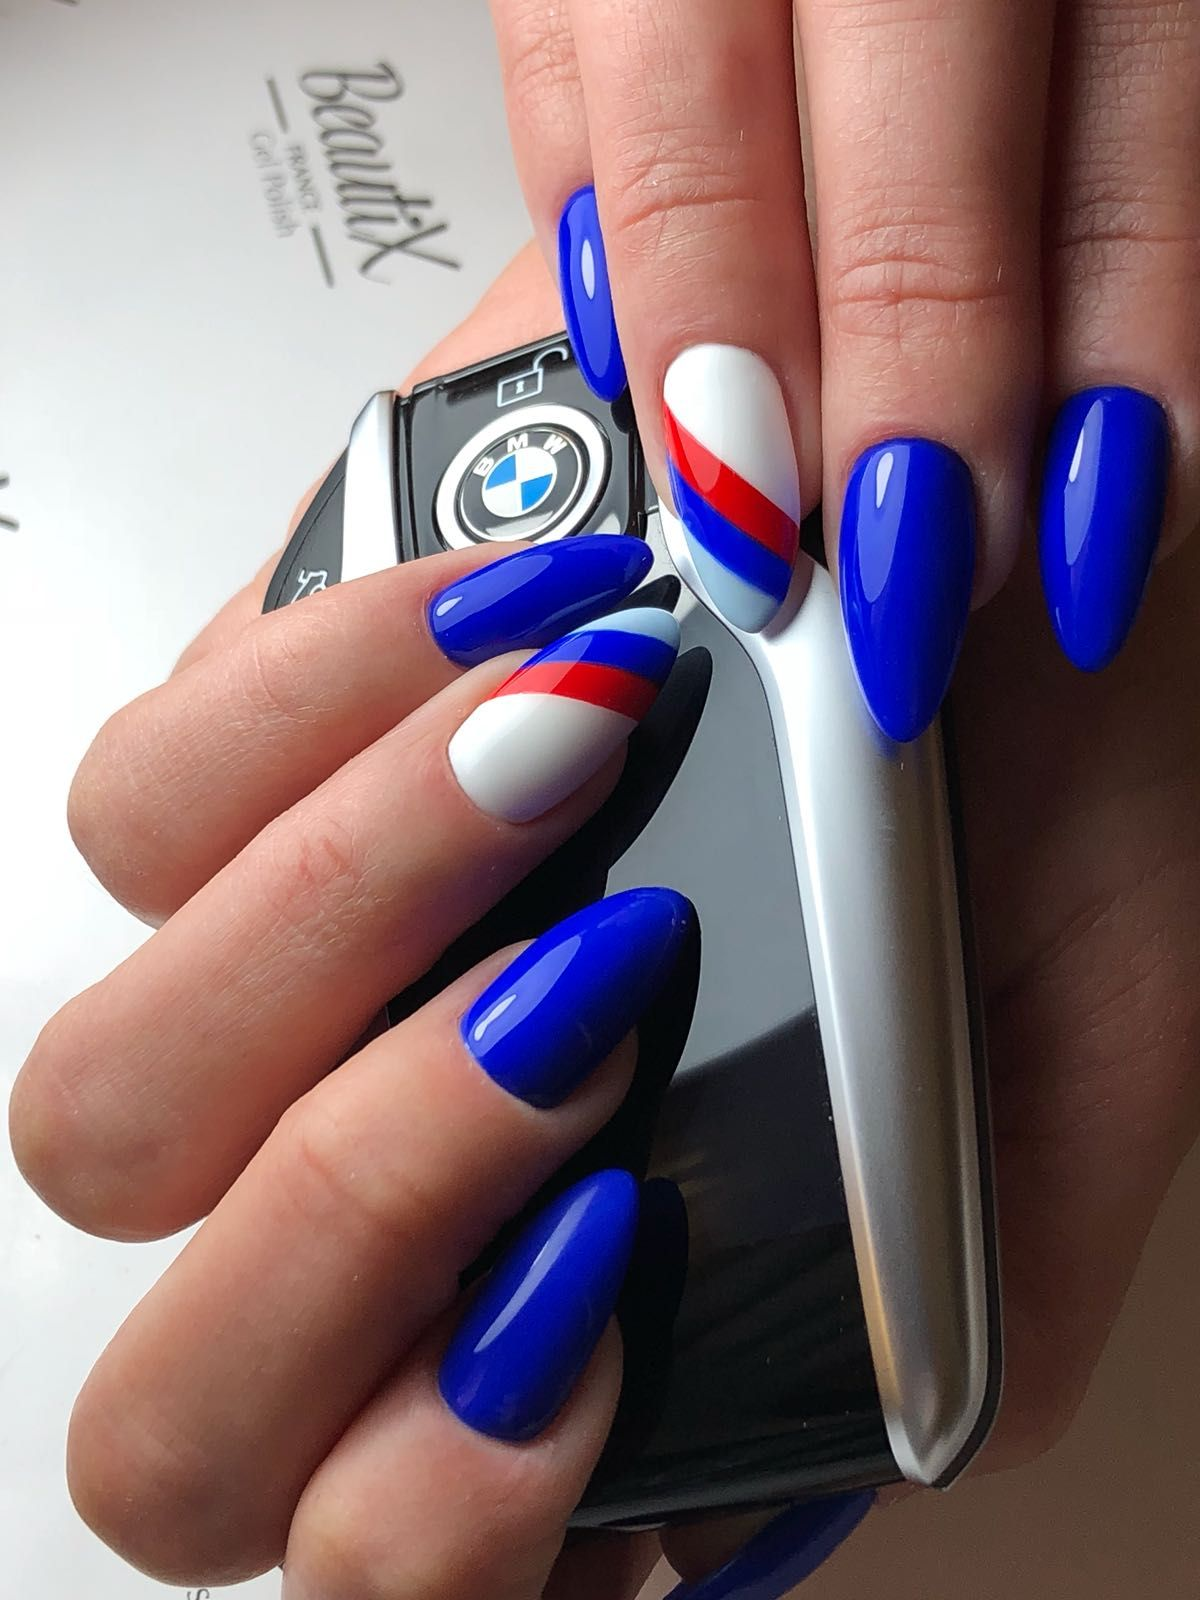 Pin by Anete Martinsone on BMW nail design in 24 | Nails ...